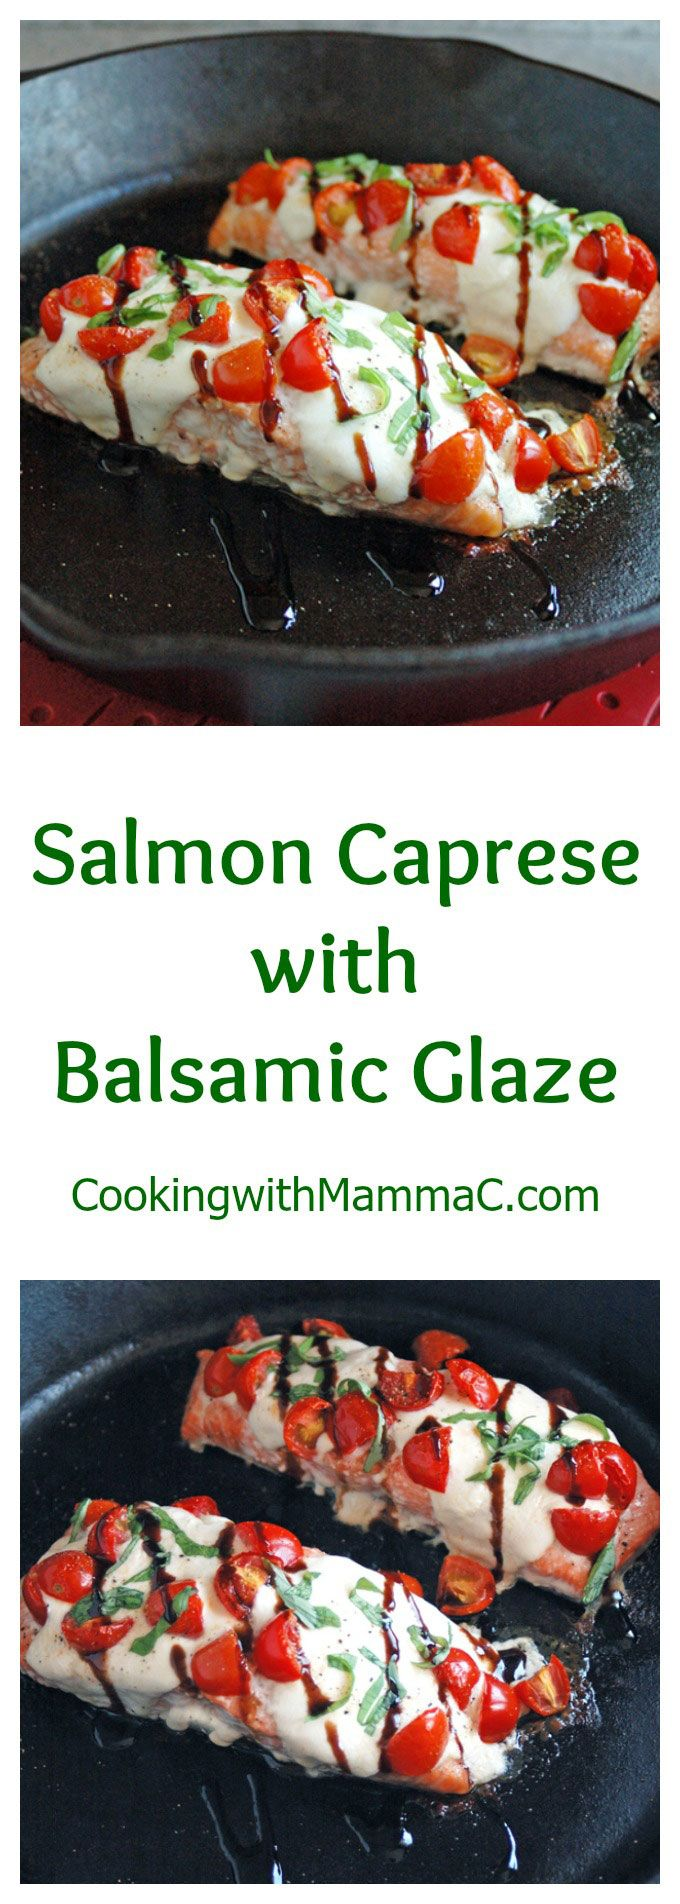 Salmon Caprese with Balsamic Glaze is the best salmon! It's so easy, yet company… (Italian Salmon Recipes)